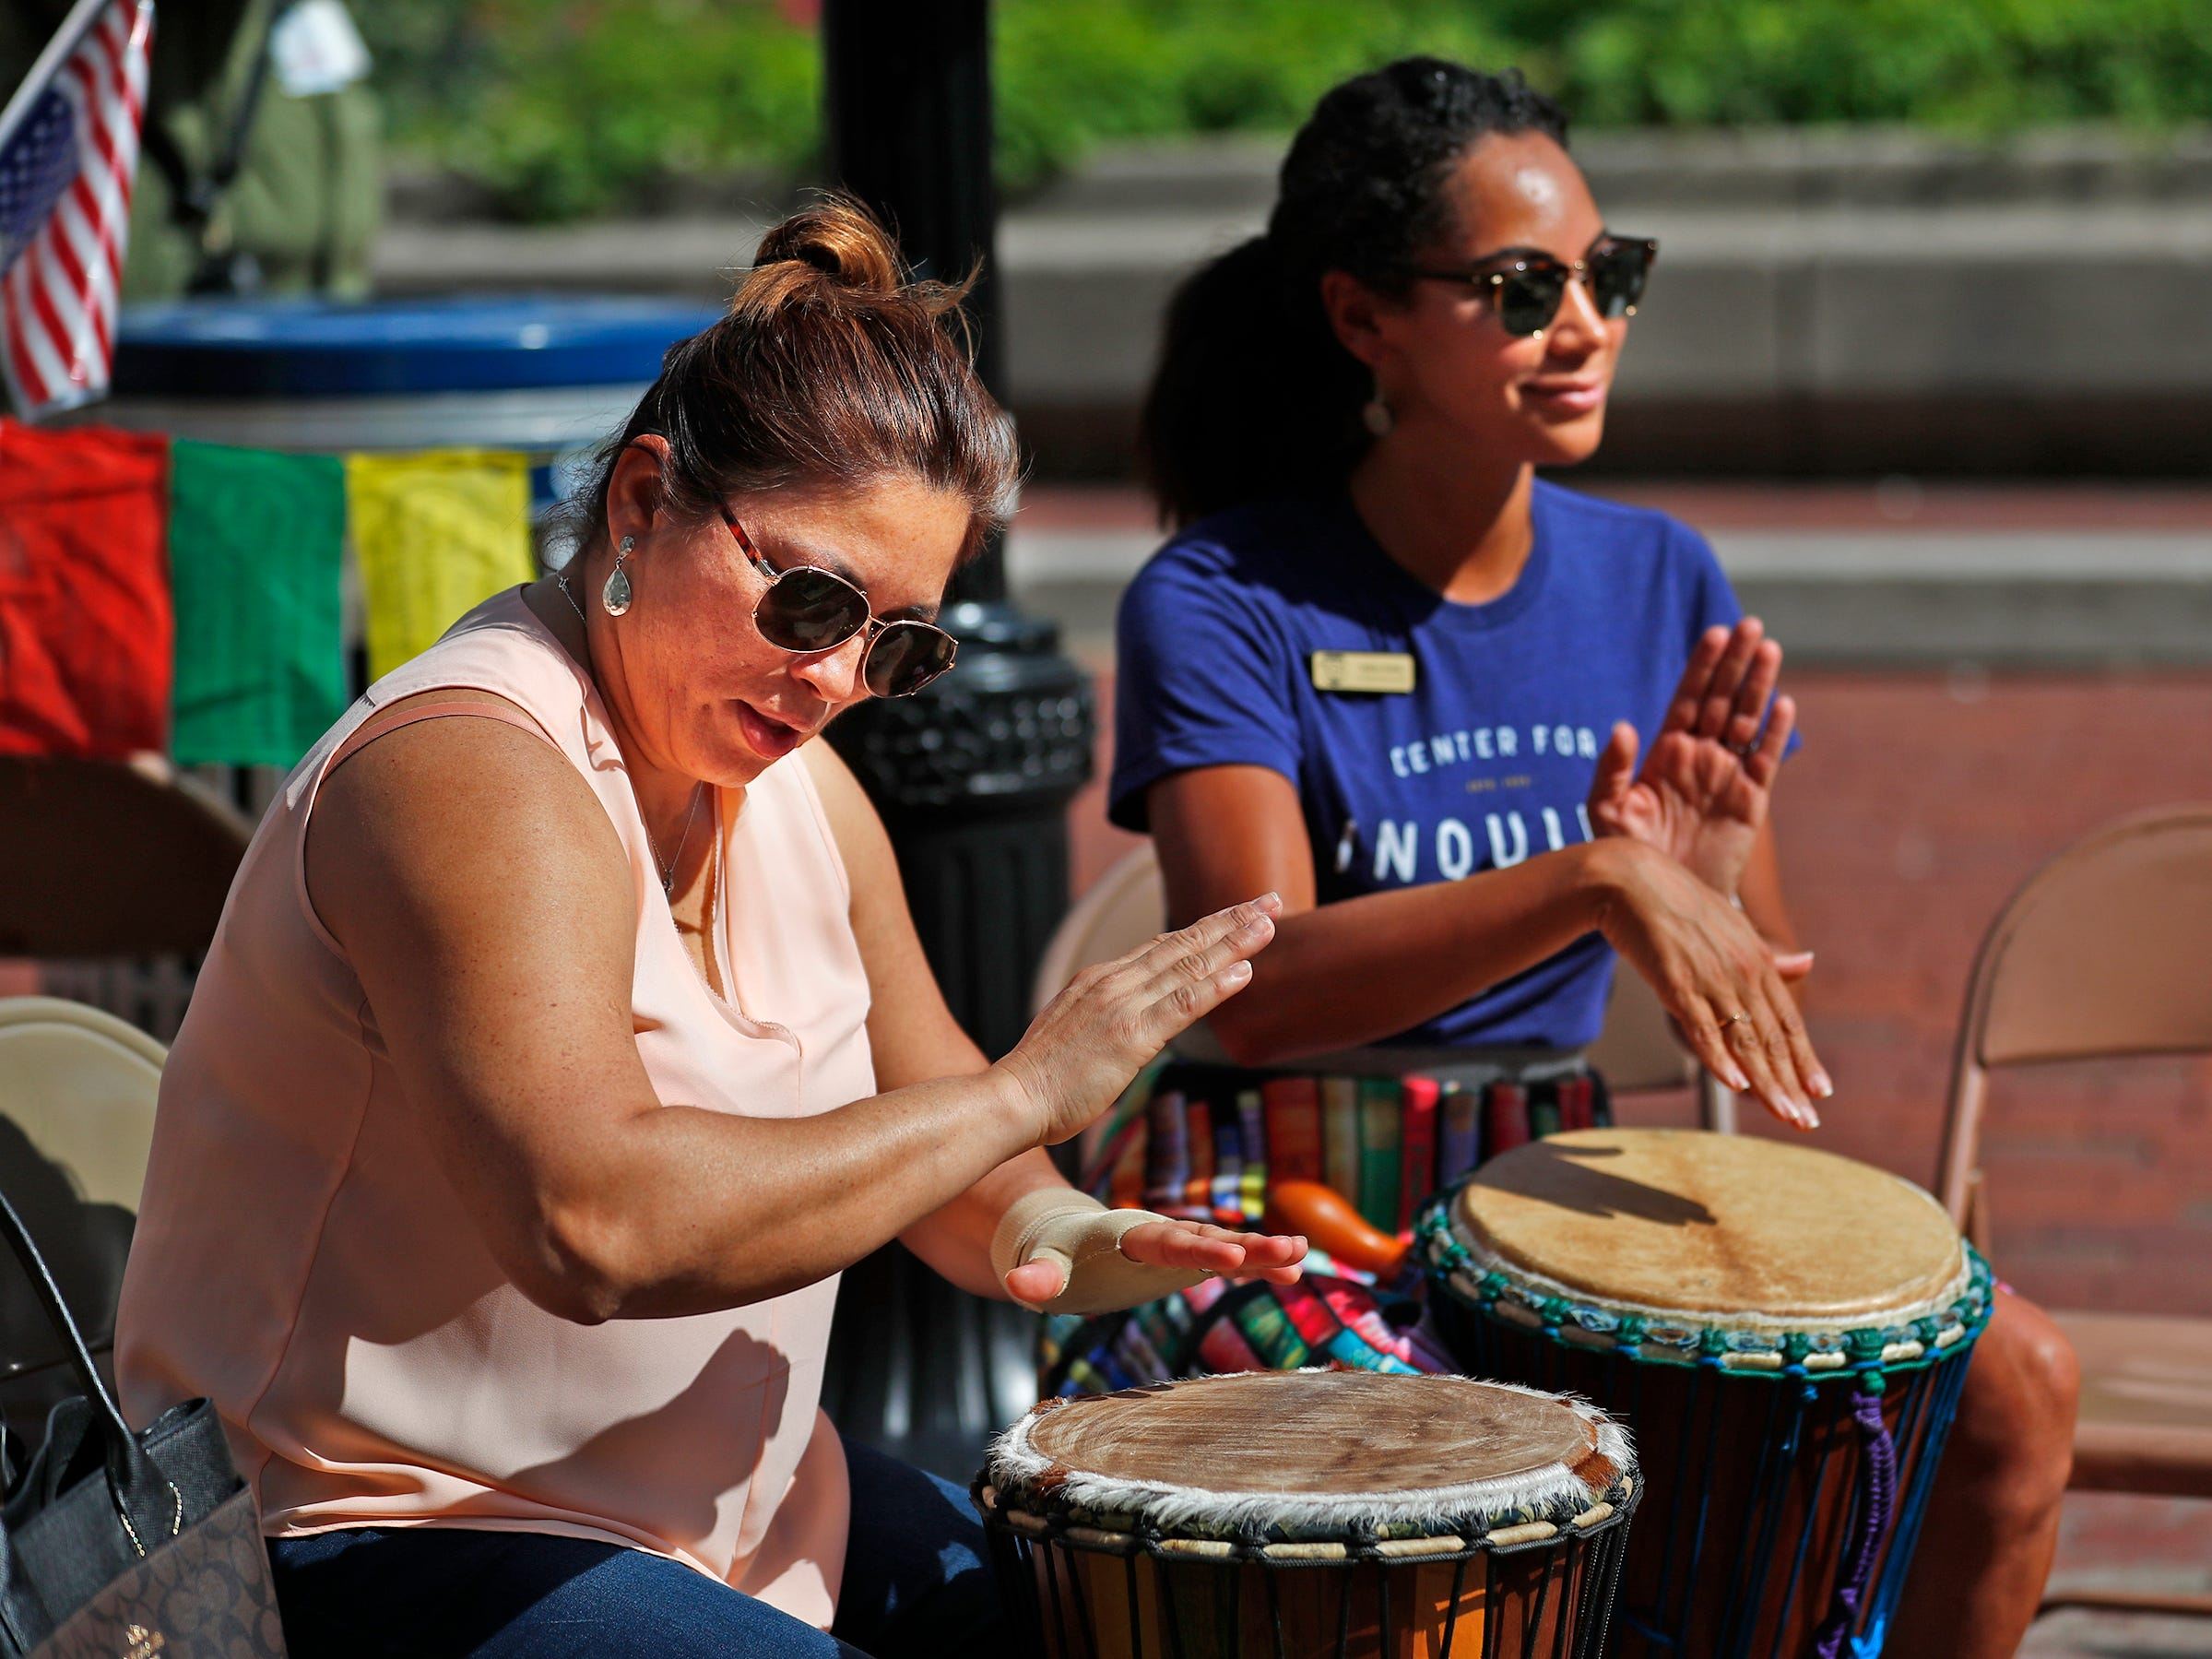 Selma Nieto, left, and Andrea Hunley play conga drums at the Center for Inquiry booth during the YMCA World Fest, on Monument Circle, Thursday, Sept. 13, 2018. YMCA of Greater Indianapolis hosts the free event that celebrates cultures including international food vendors, music, sports, and performers.